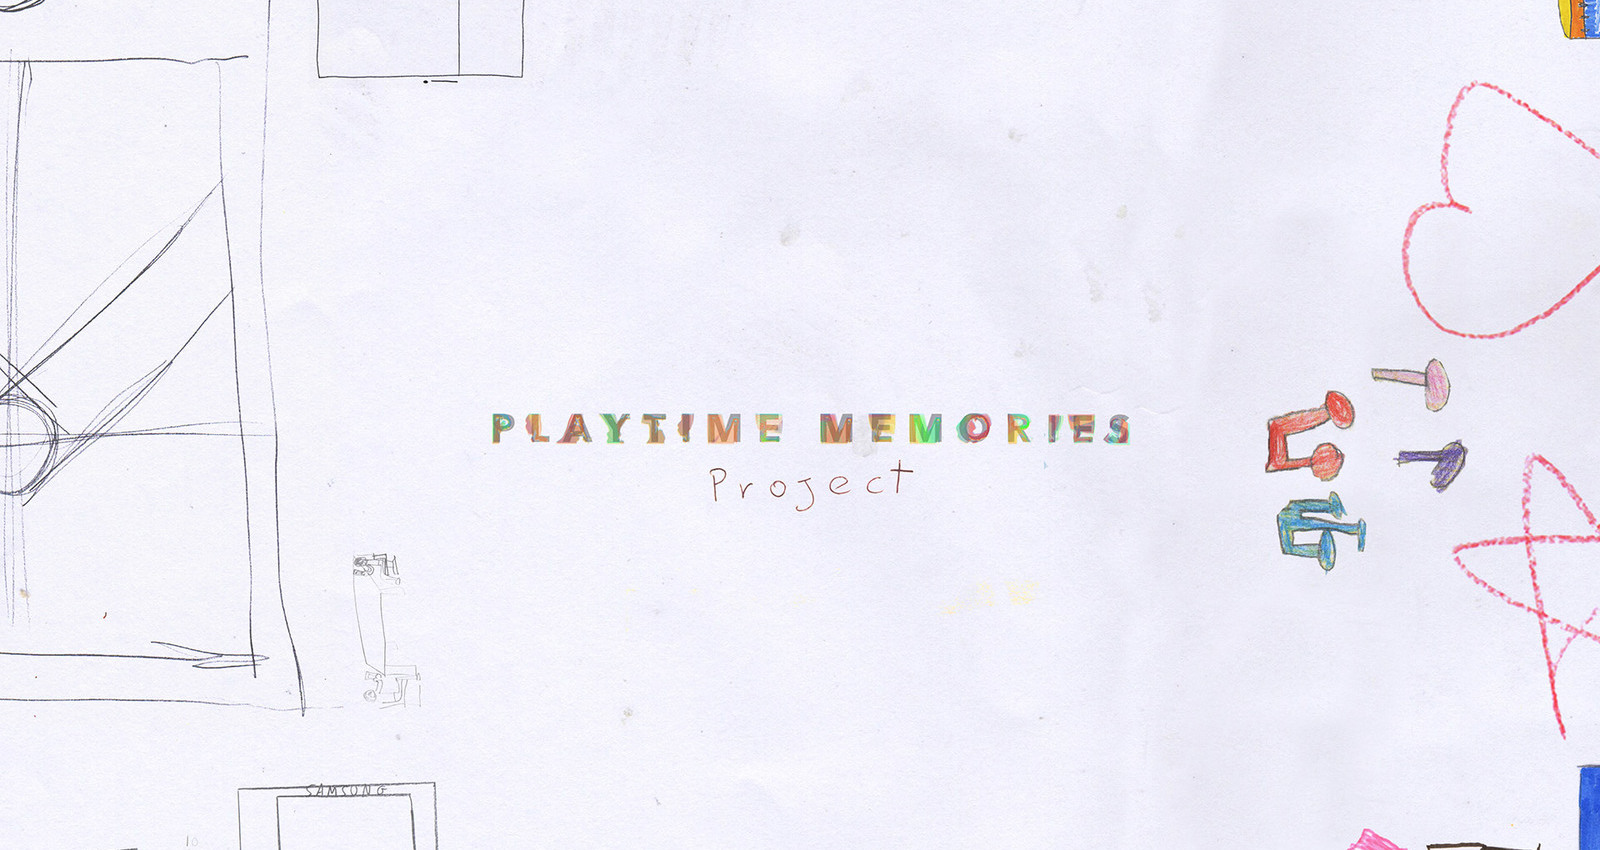 Playtime Memories Project